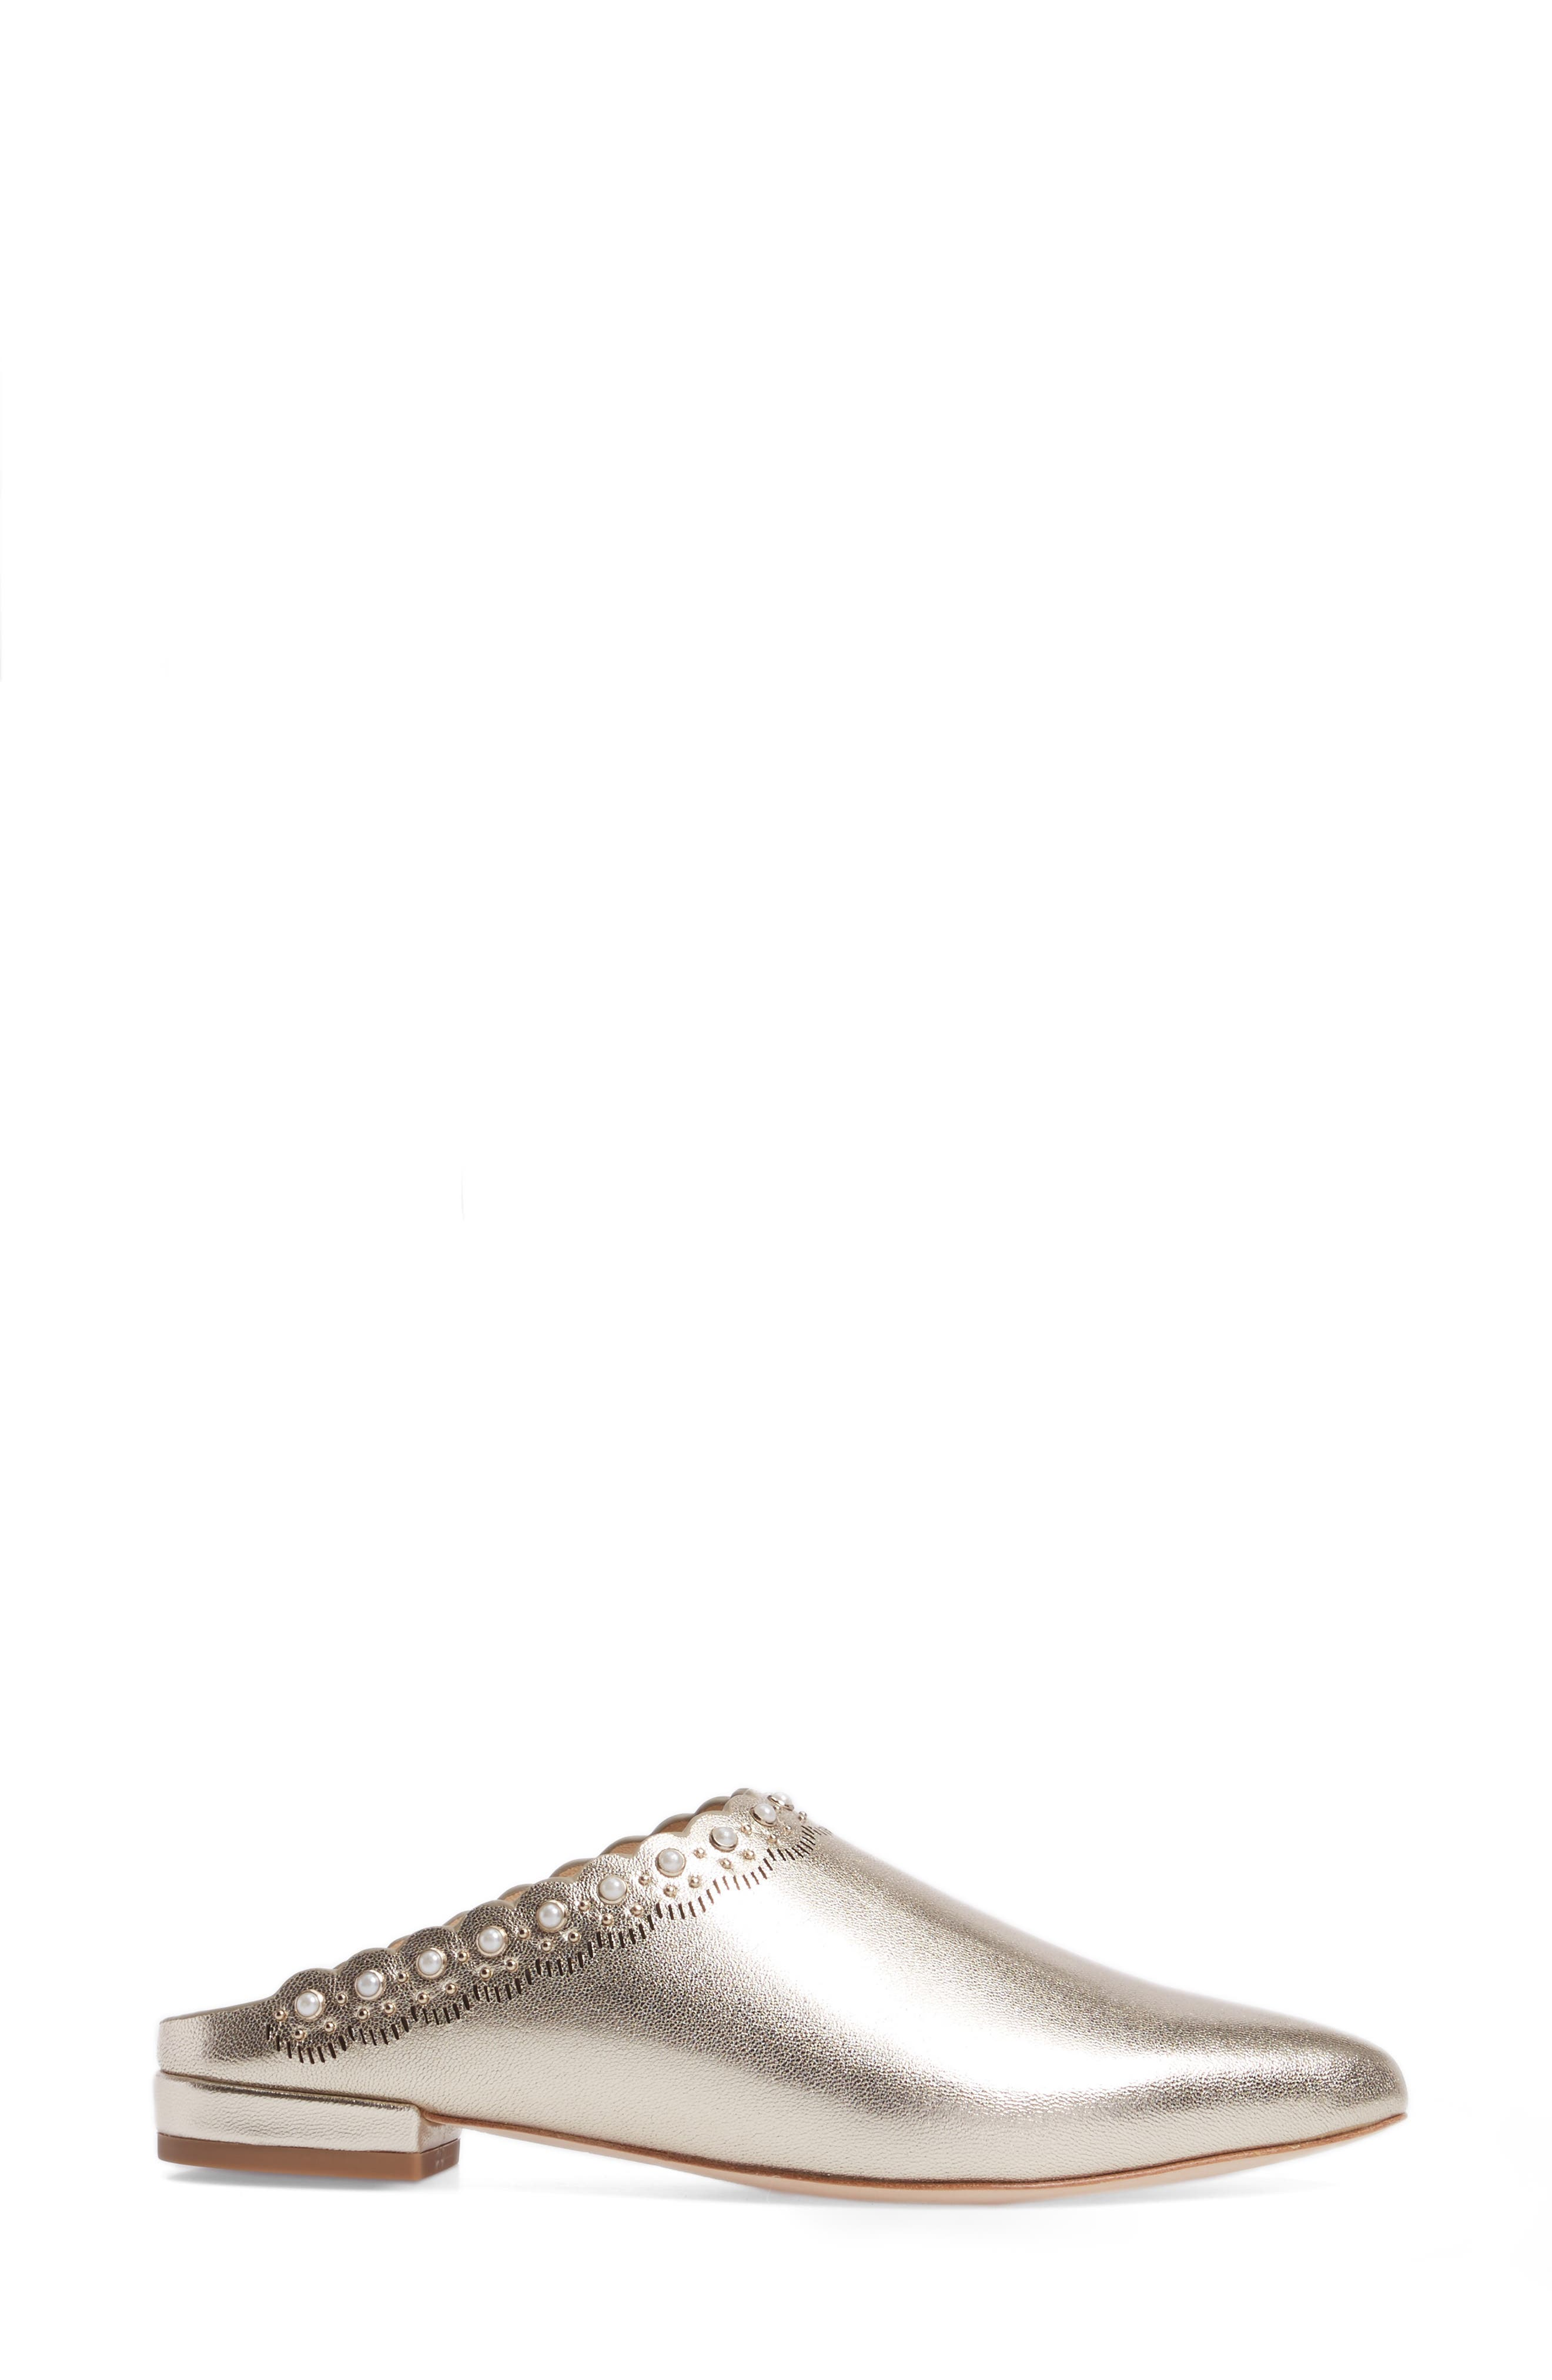 Giselle Mule,                             Alternate thumbnail 3, color,                             Champagne Leather